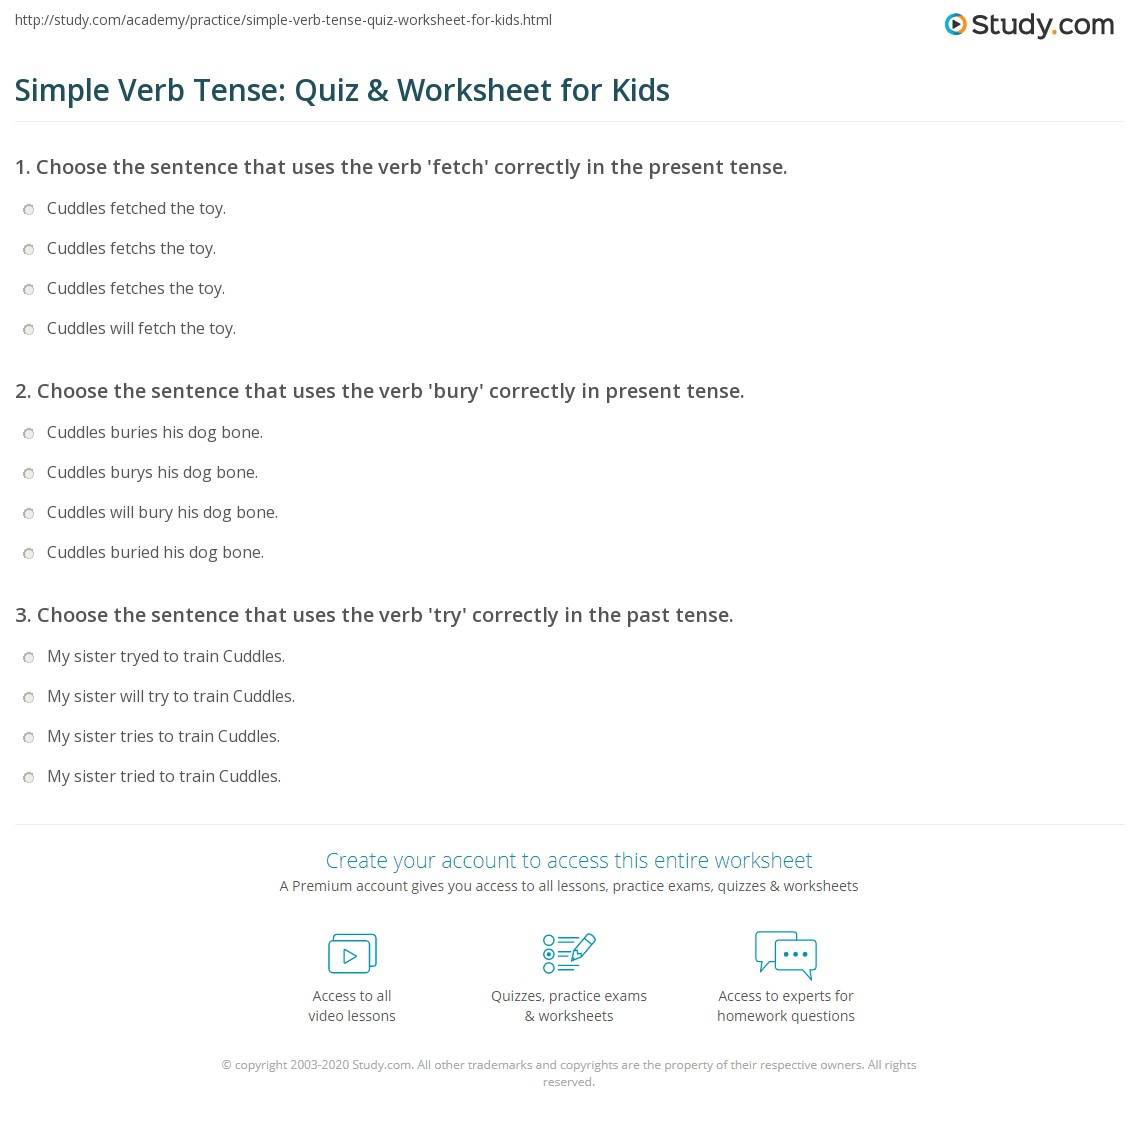 Simple Verb Tense: Quiz & Worksheet for Kids | Study com